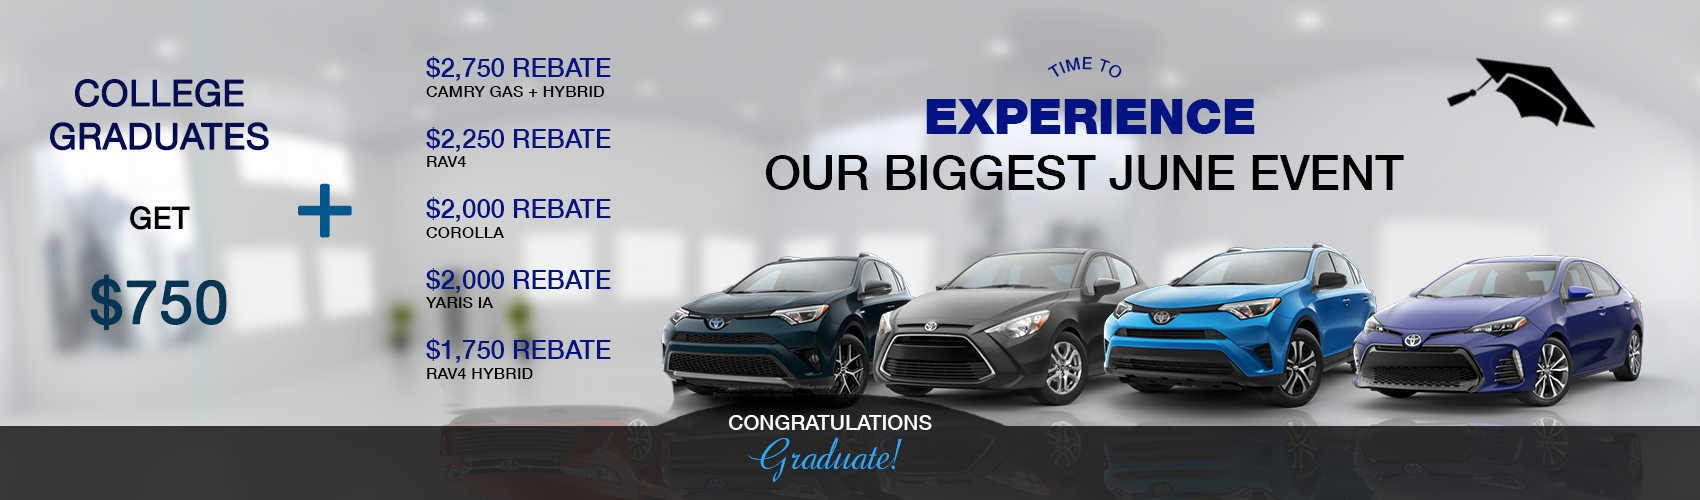 College Graduate Specials at Beaverton Toyota